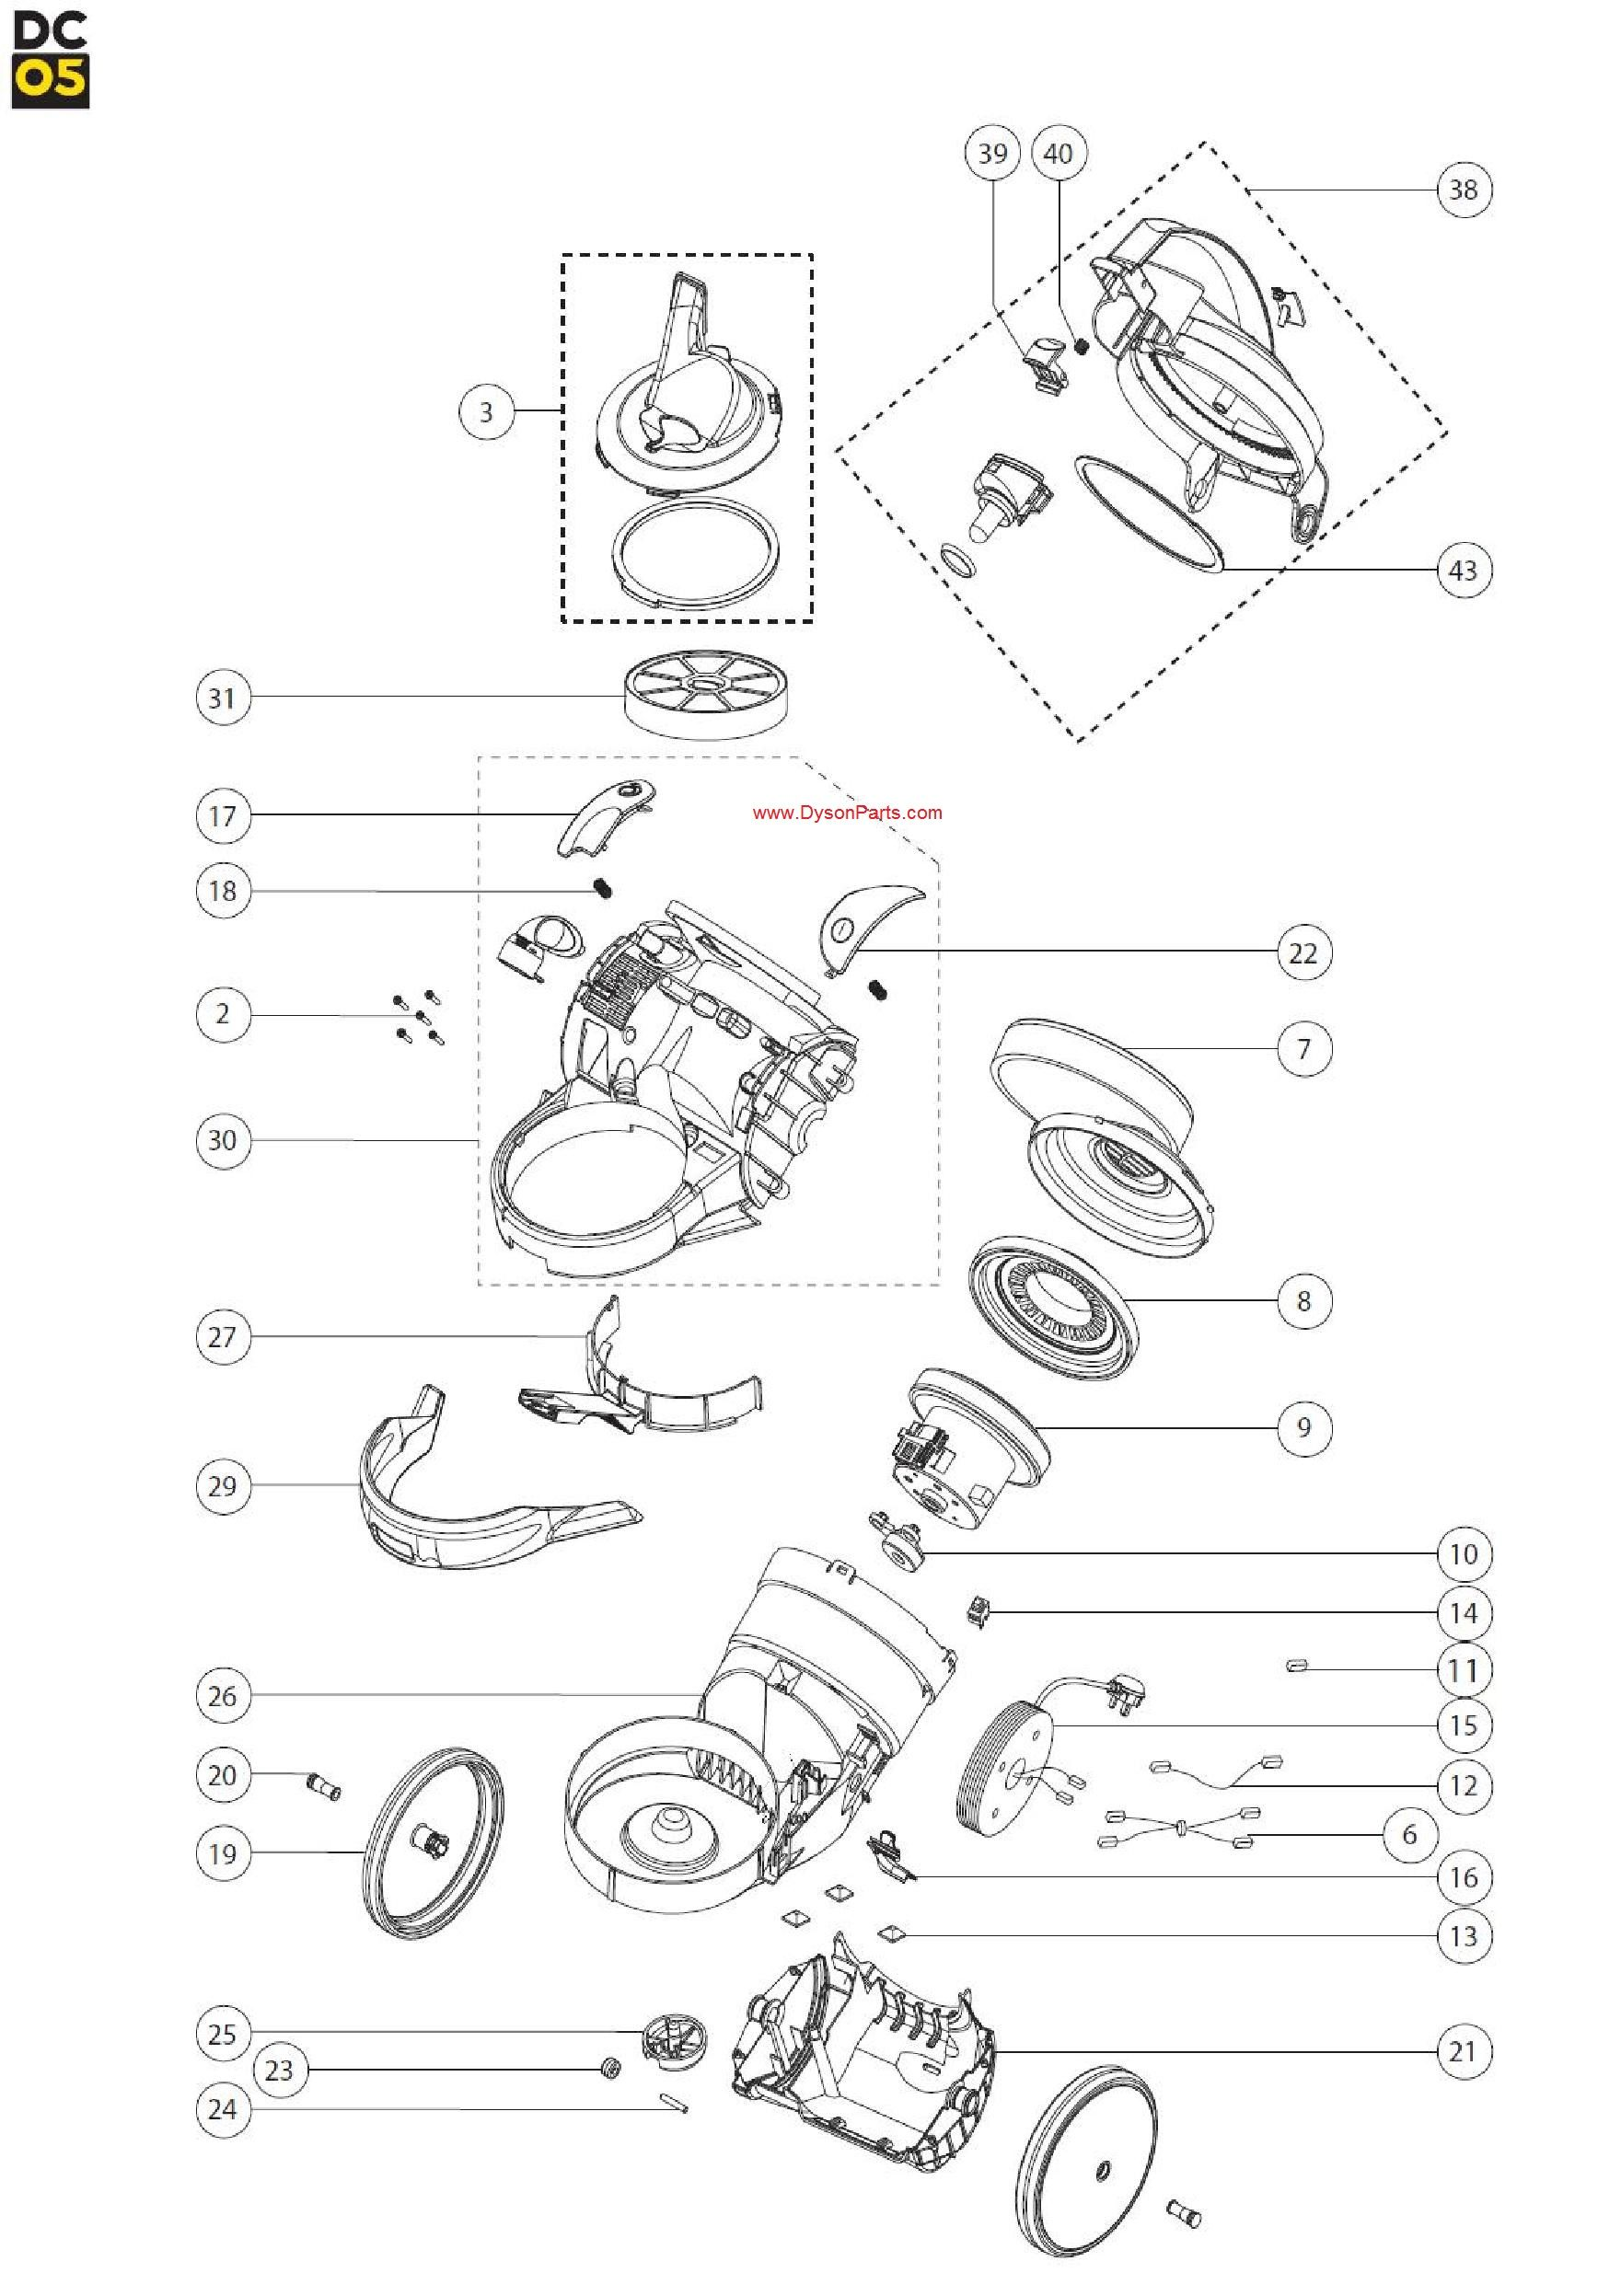 If You Need Exploded Drawings Or A Schematic For The